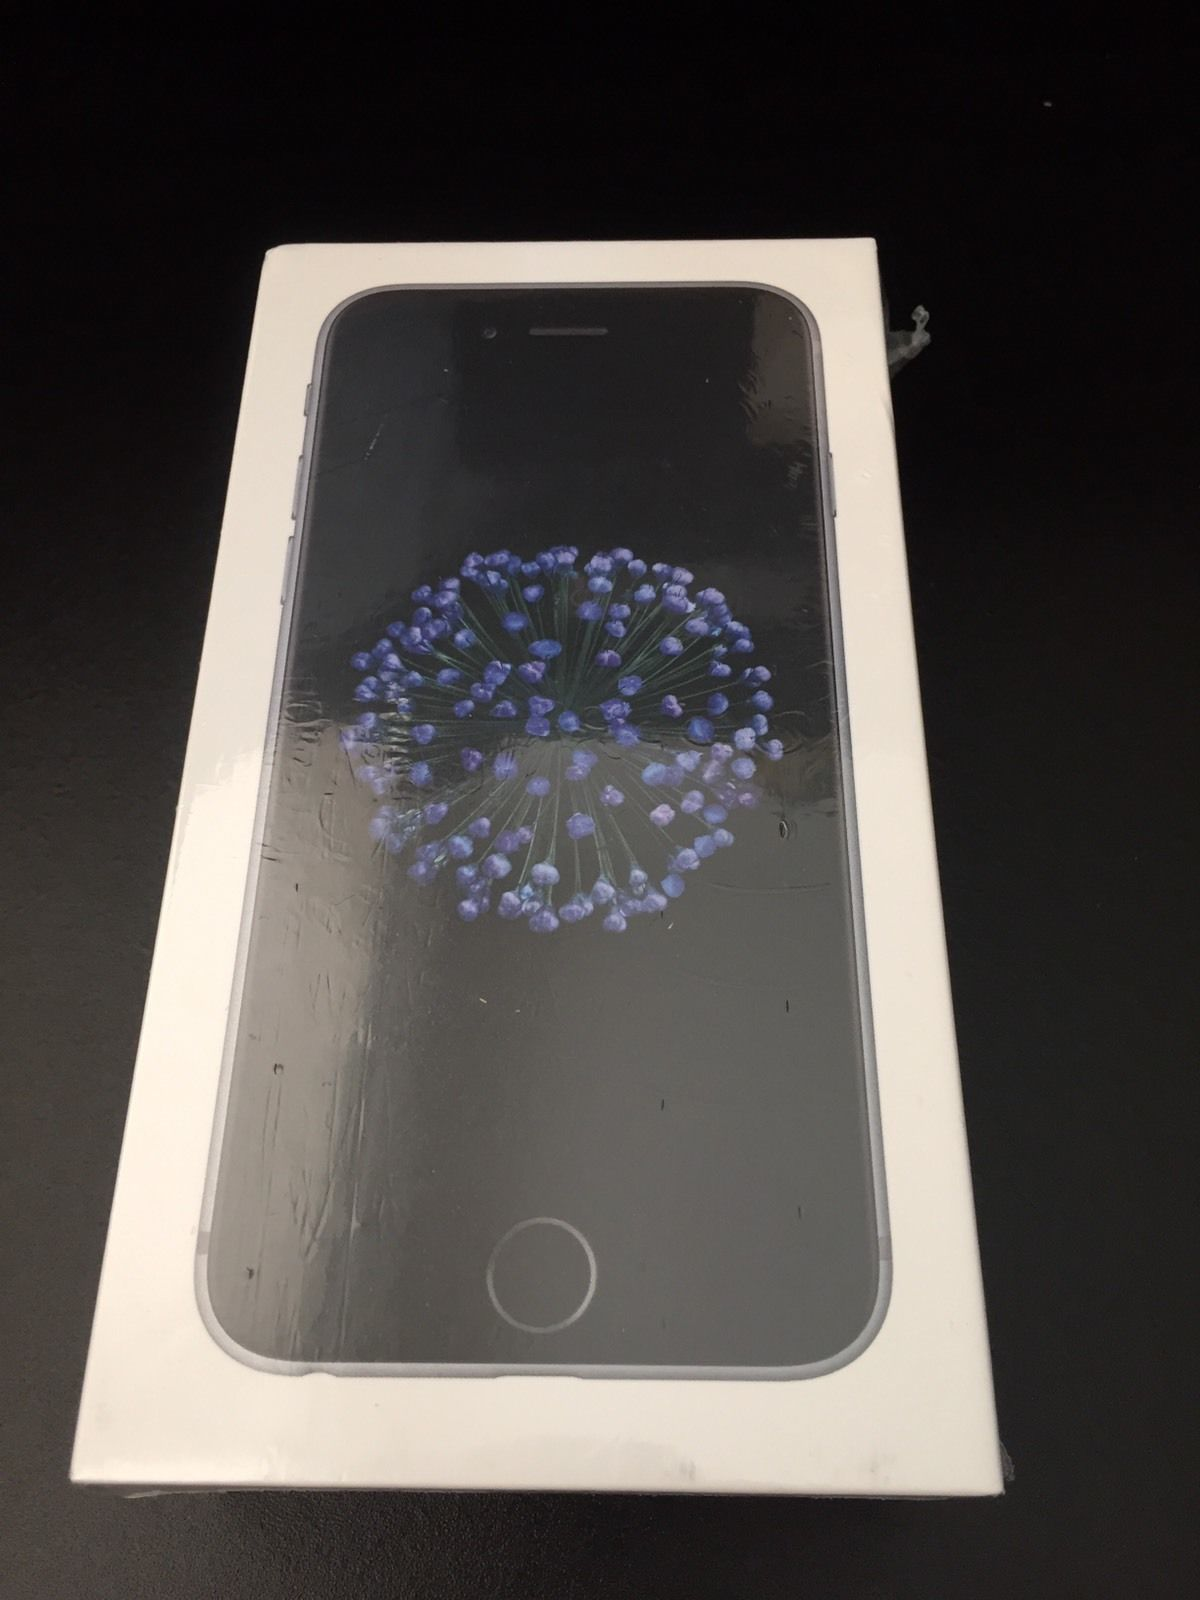 APPLE IPHONE 6 32GB - SPACE GRAY (New In Box - Sealed)